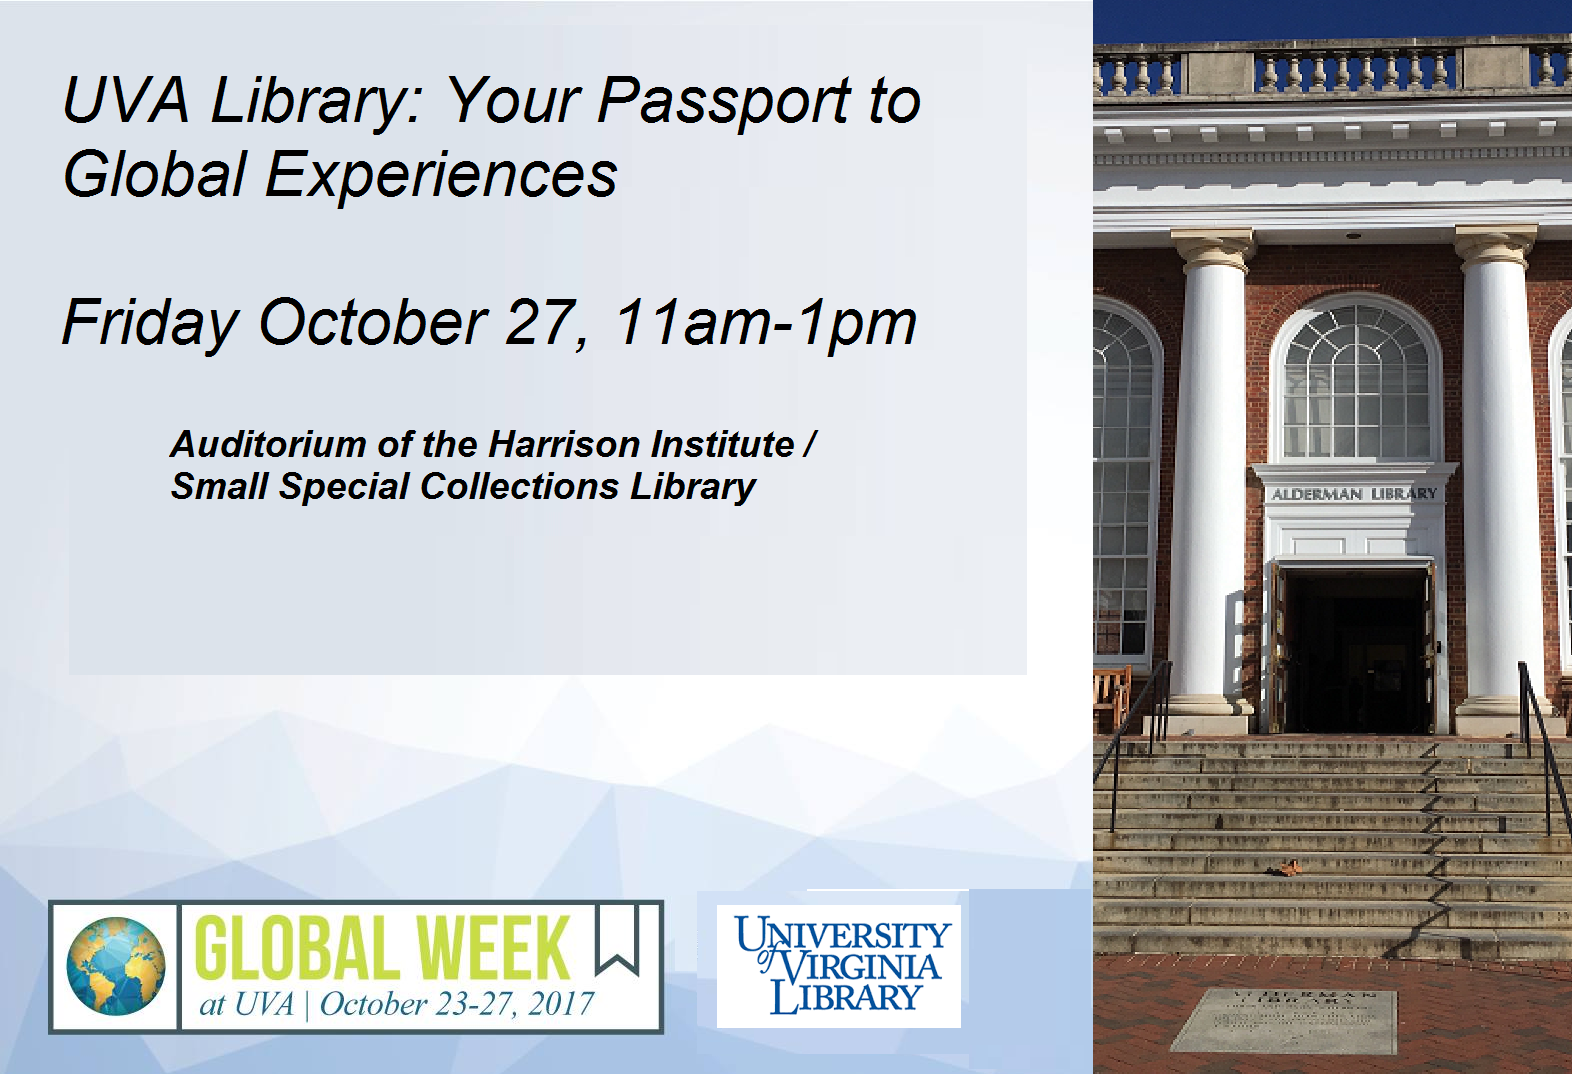 UVA Library: Your Passport to Global Experiences